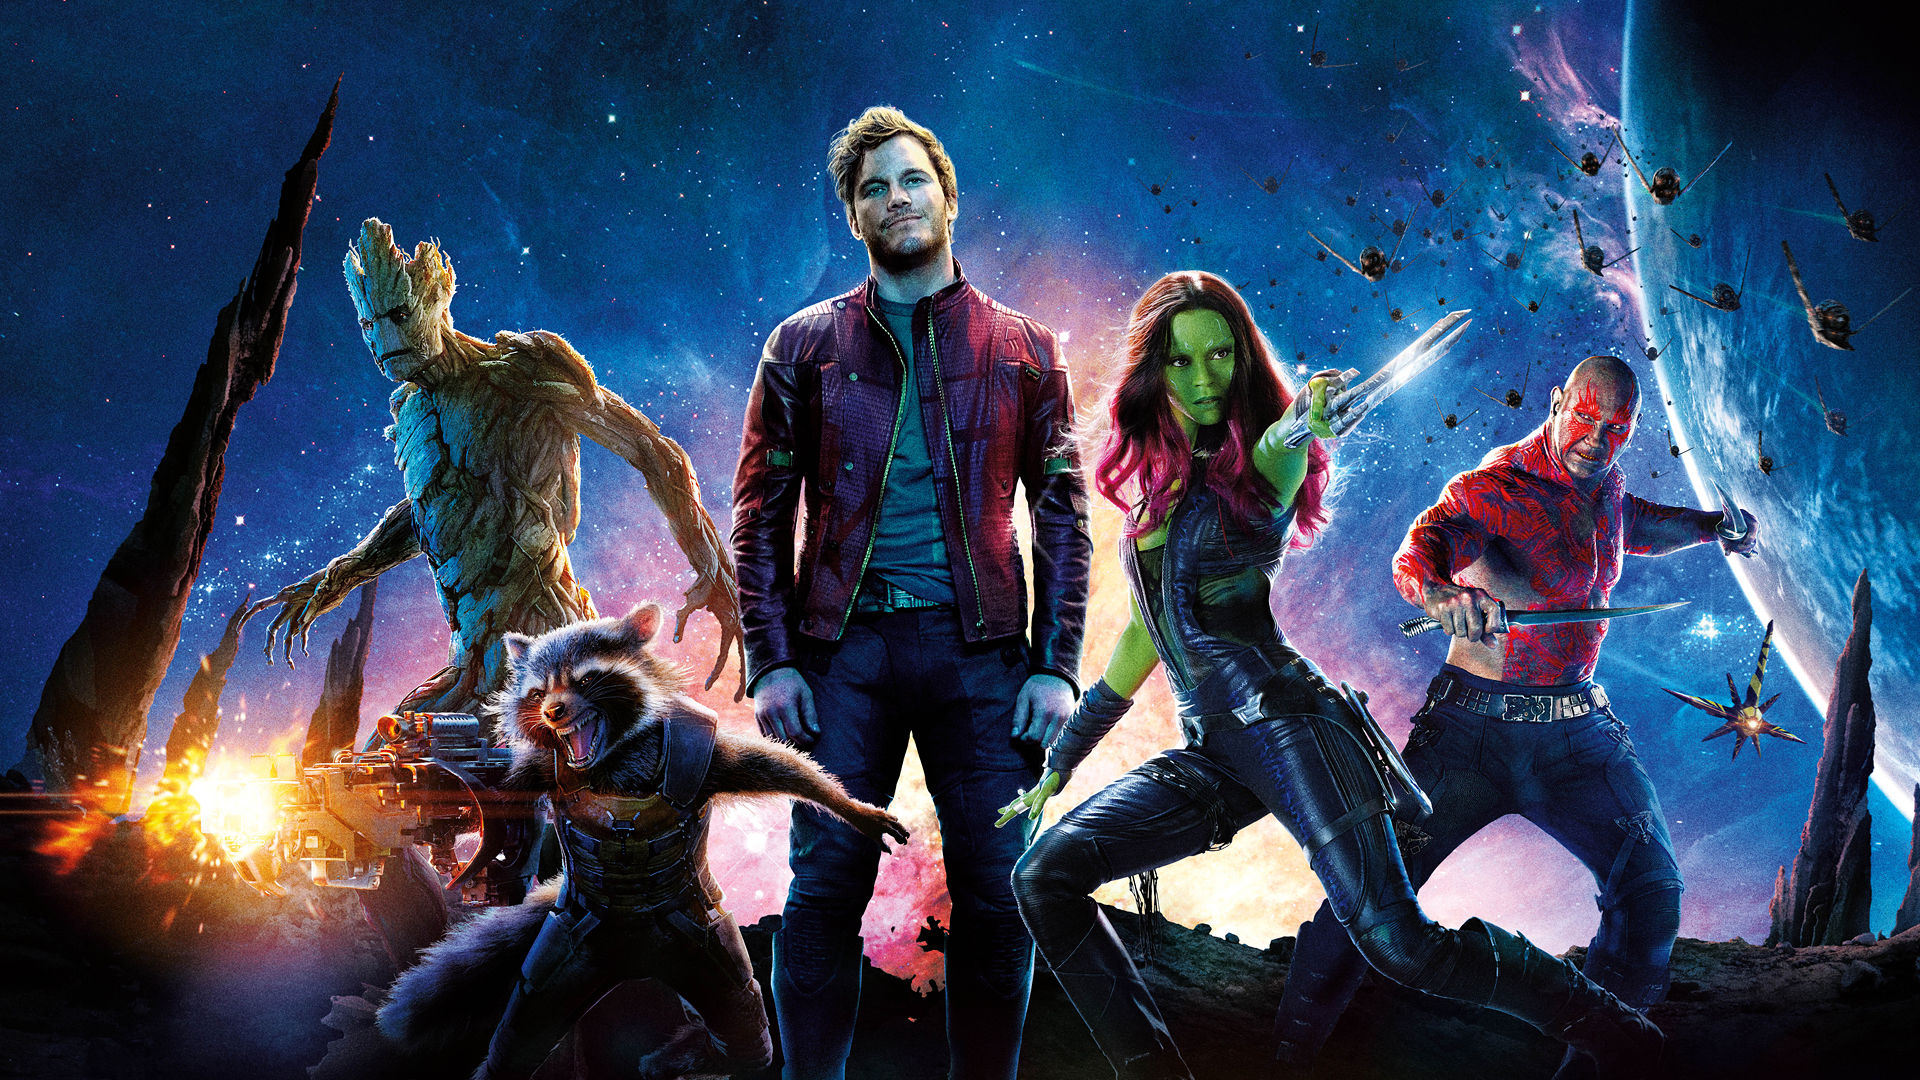 James Gunn reveals Guardians of the Galaxy 2's official title!